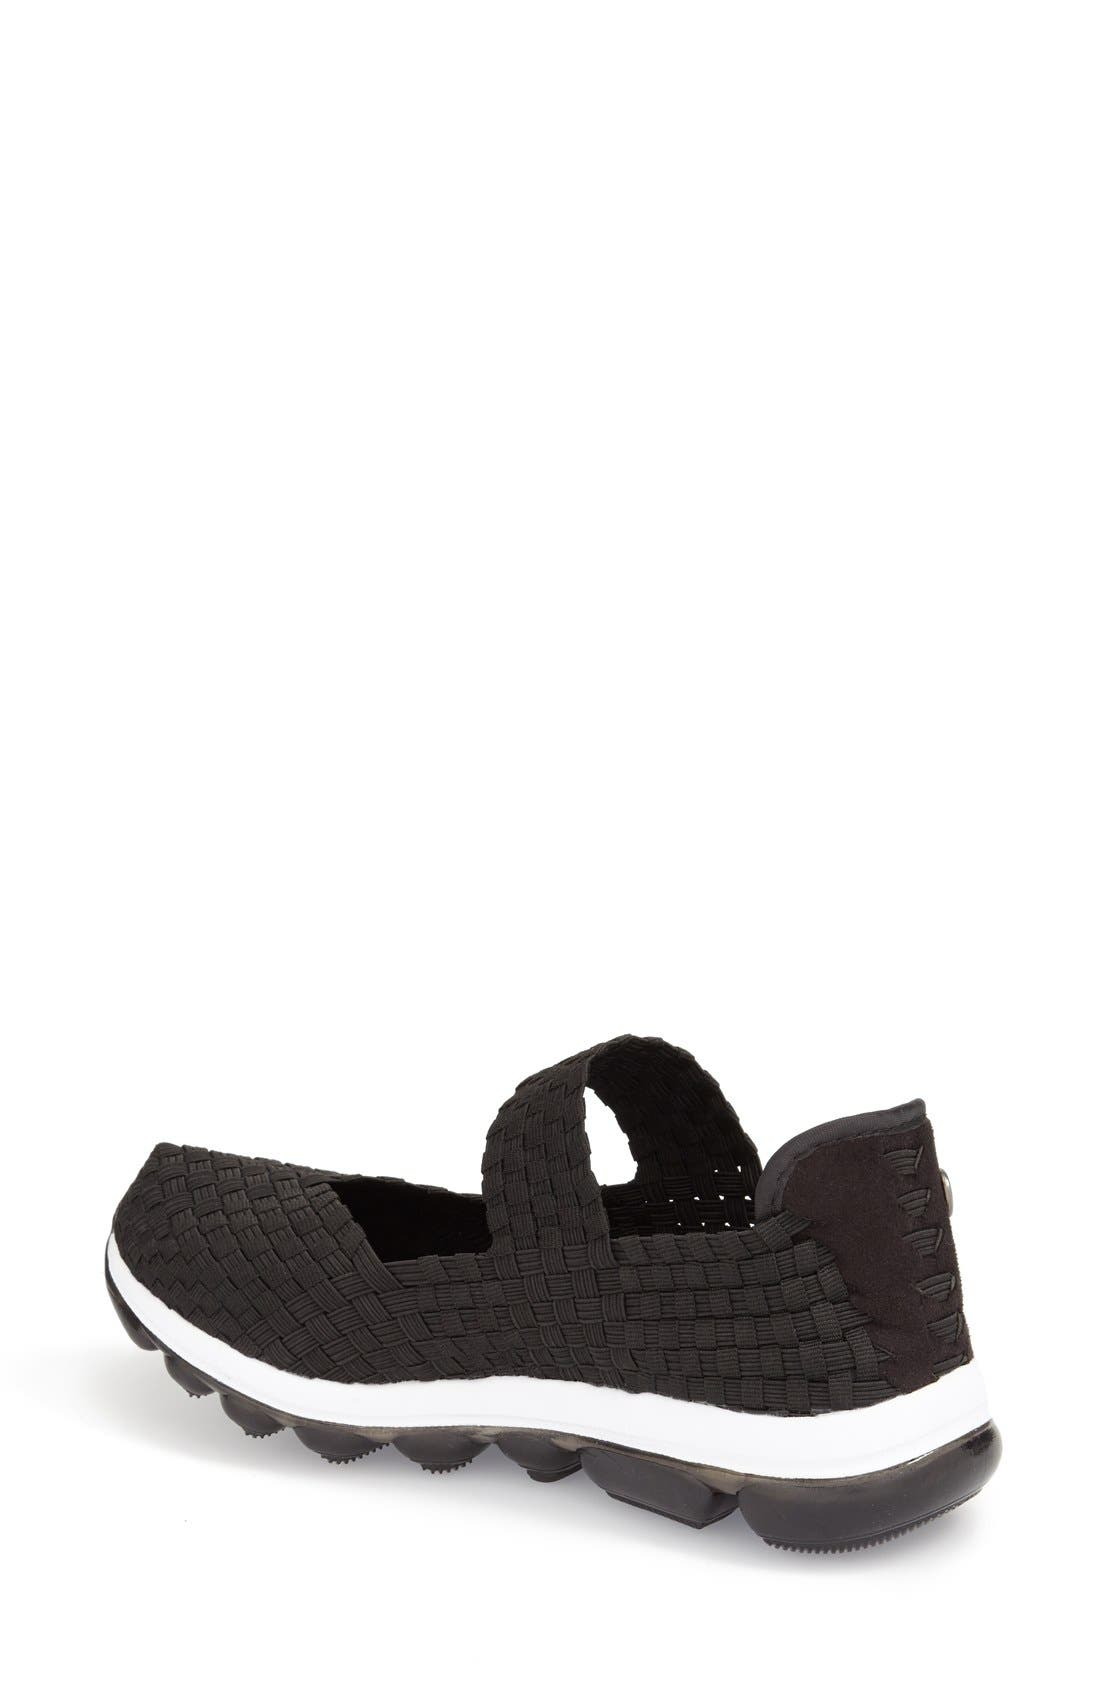 'Gummies Charm' Stretch Woven Slip-On Sneaker,                             Alternate thumbnail 2, color,                             001